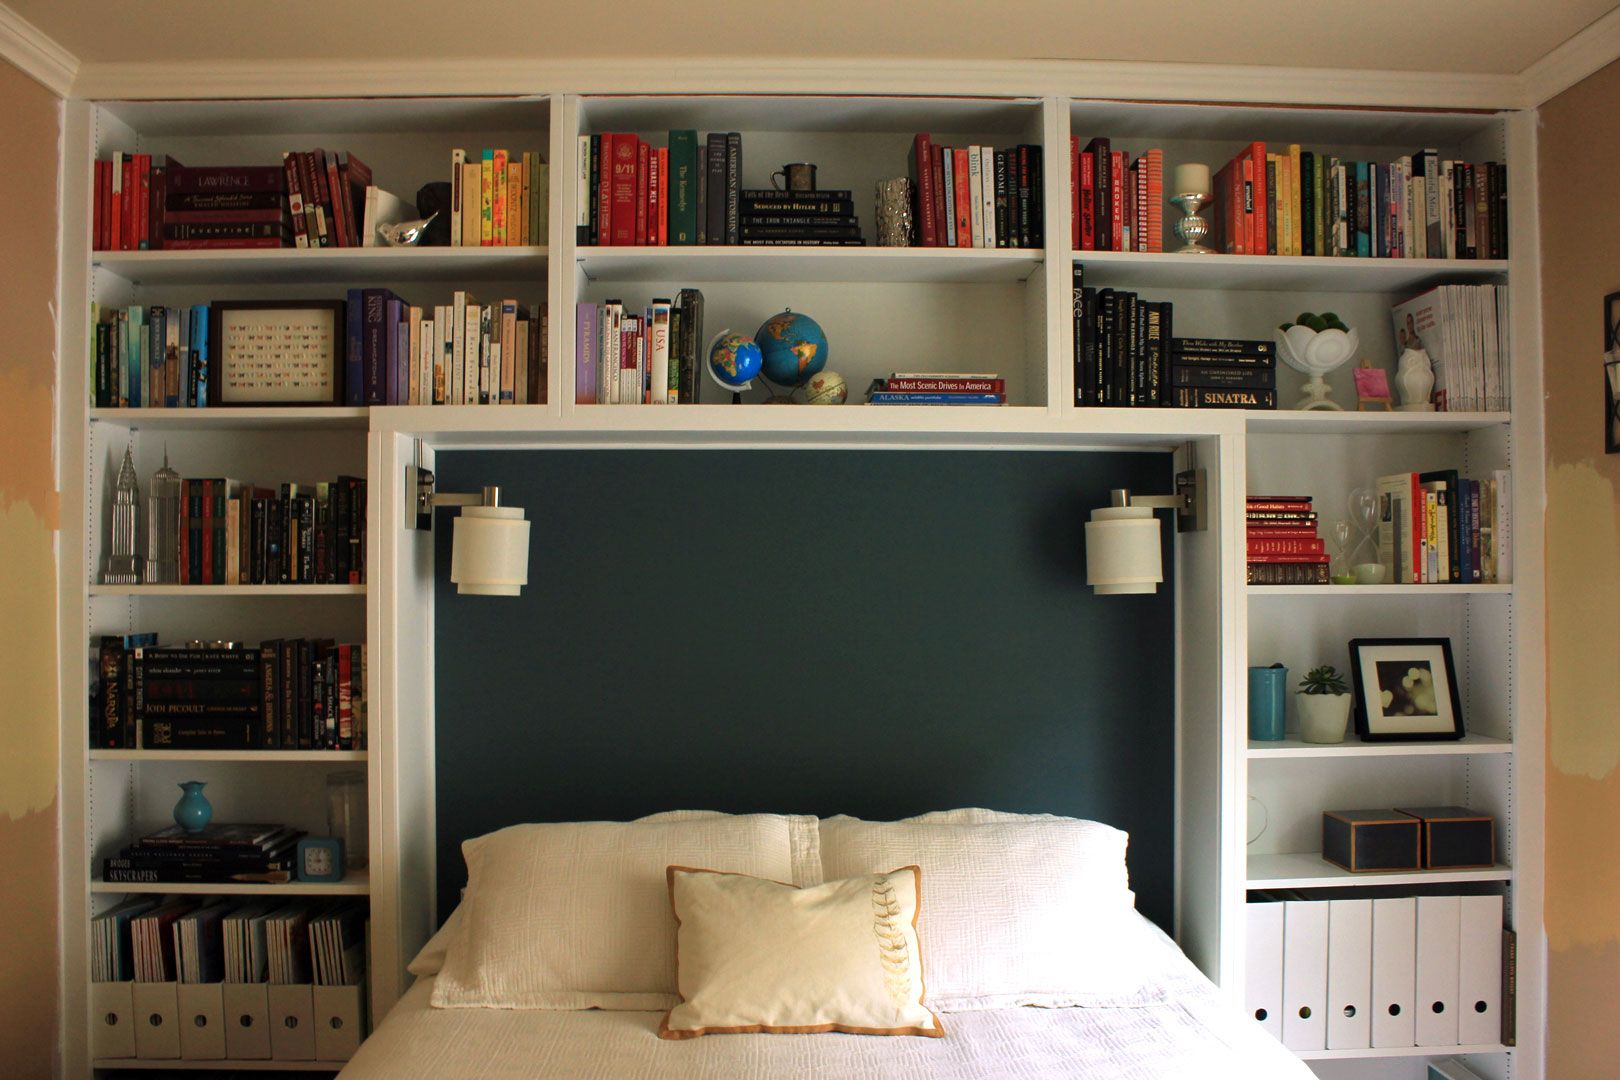 backtobosnia bookshelf design com headboard a making bedroomdecor pin headboards